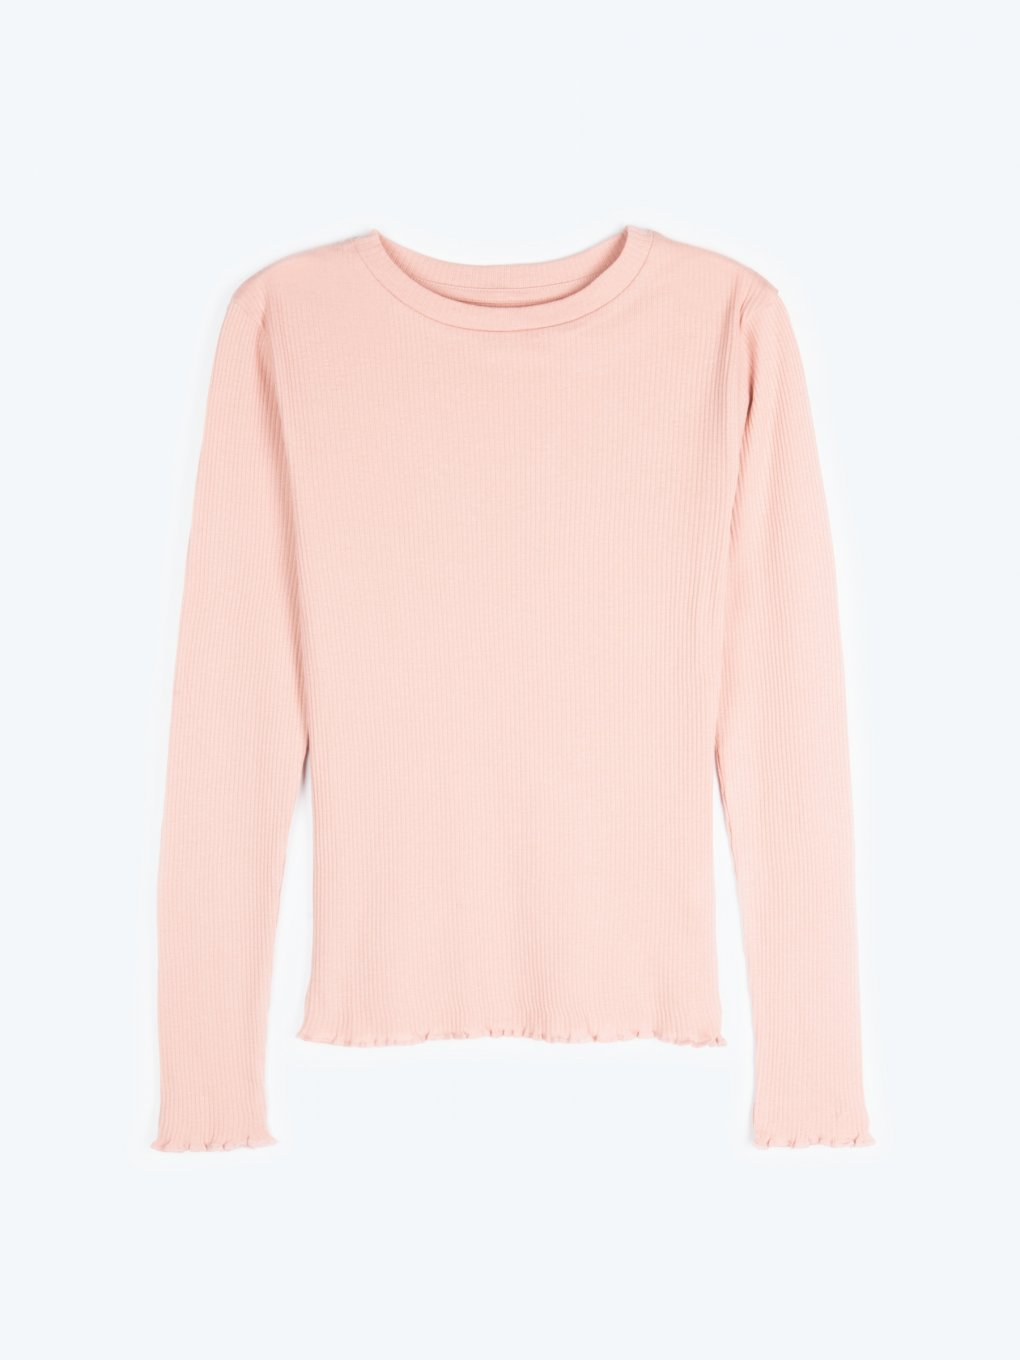 Ribbed cotton basic top